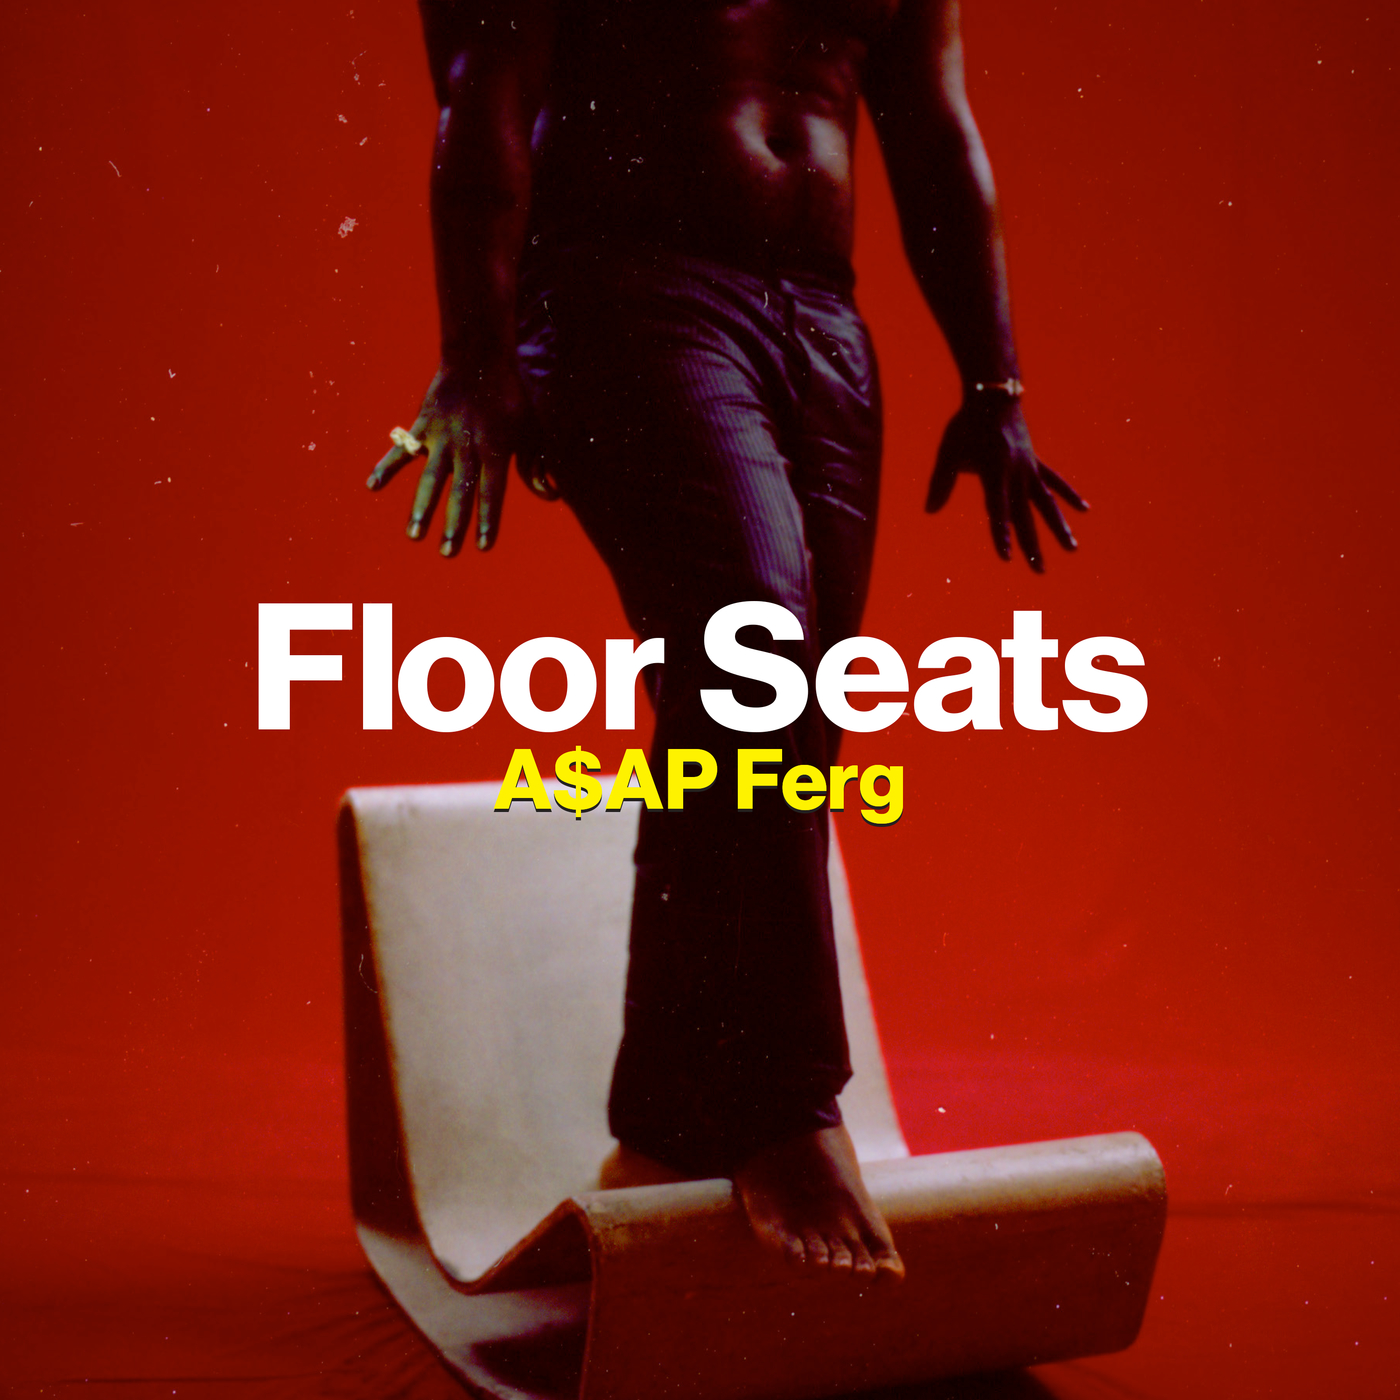 Floor Seats - A$AP Ferg